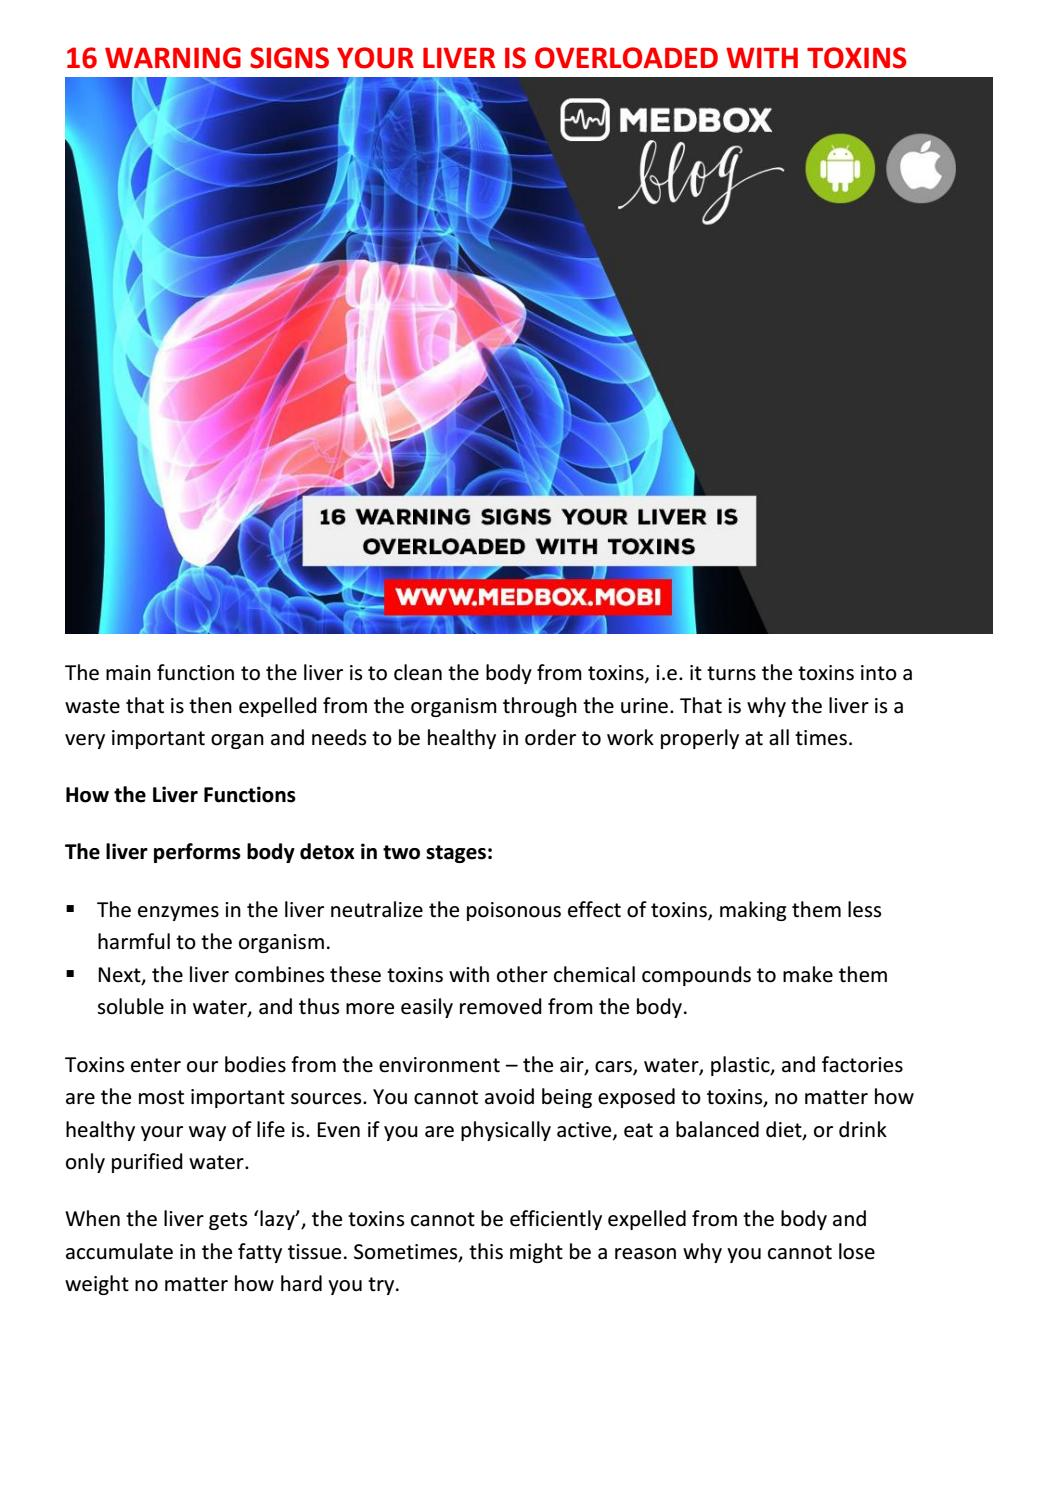 16 Warning Signs Your Liver Is Overloaded With Toxins By Sameerk Issuu